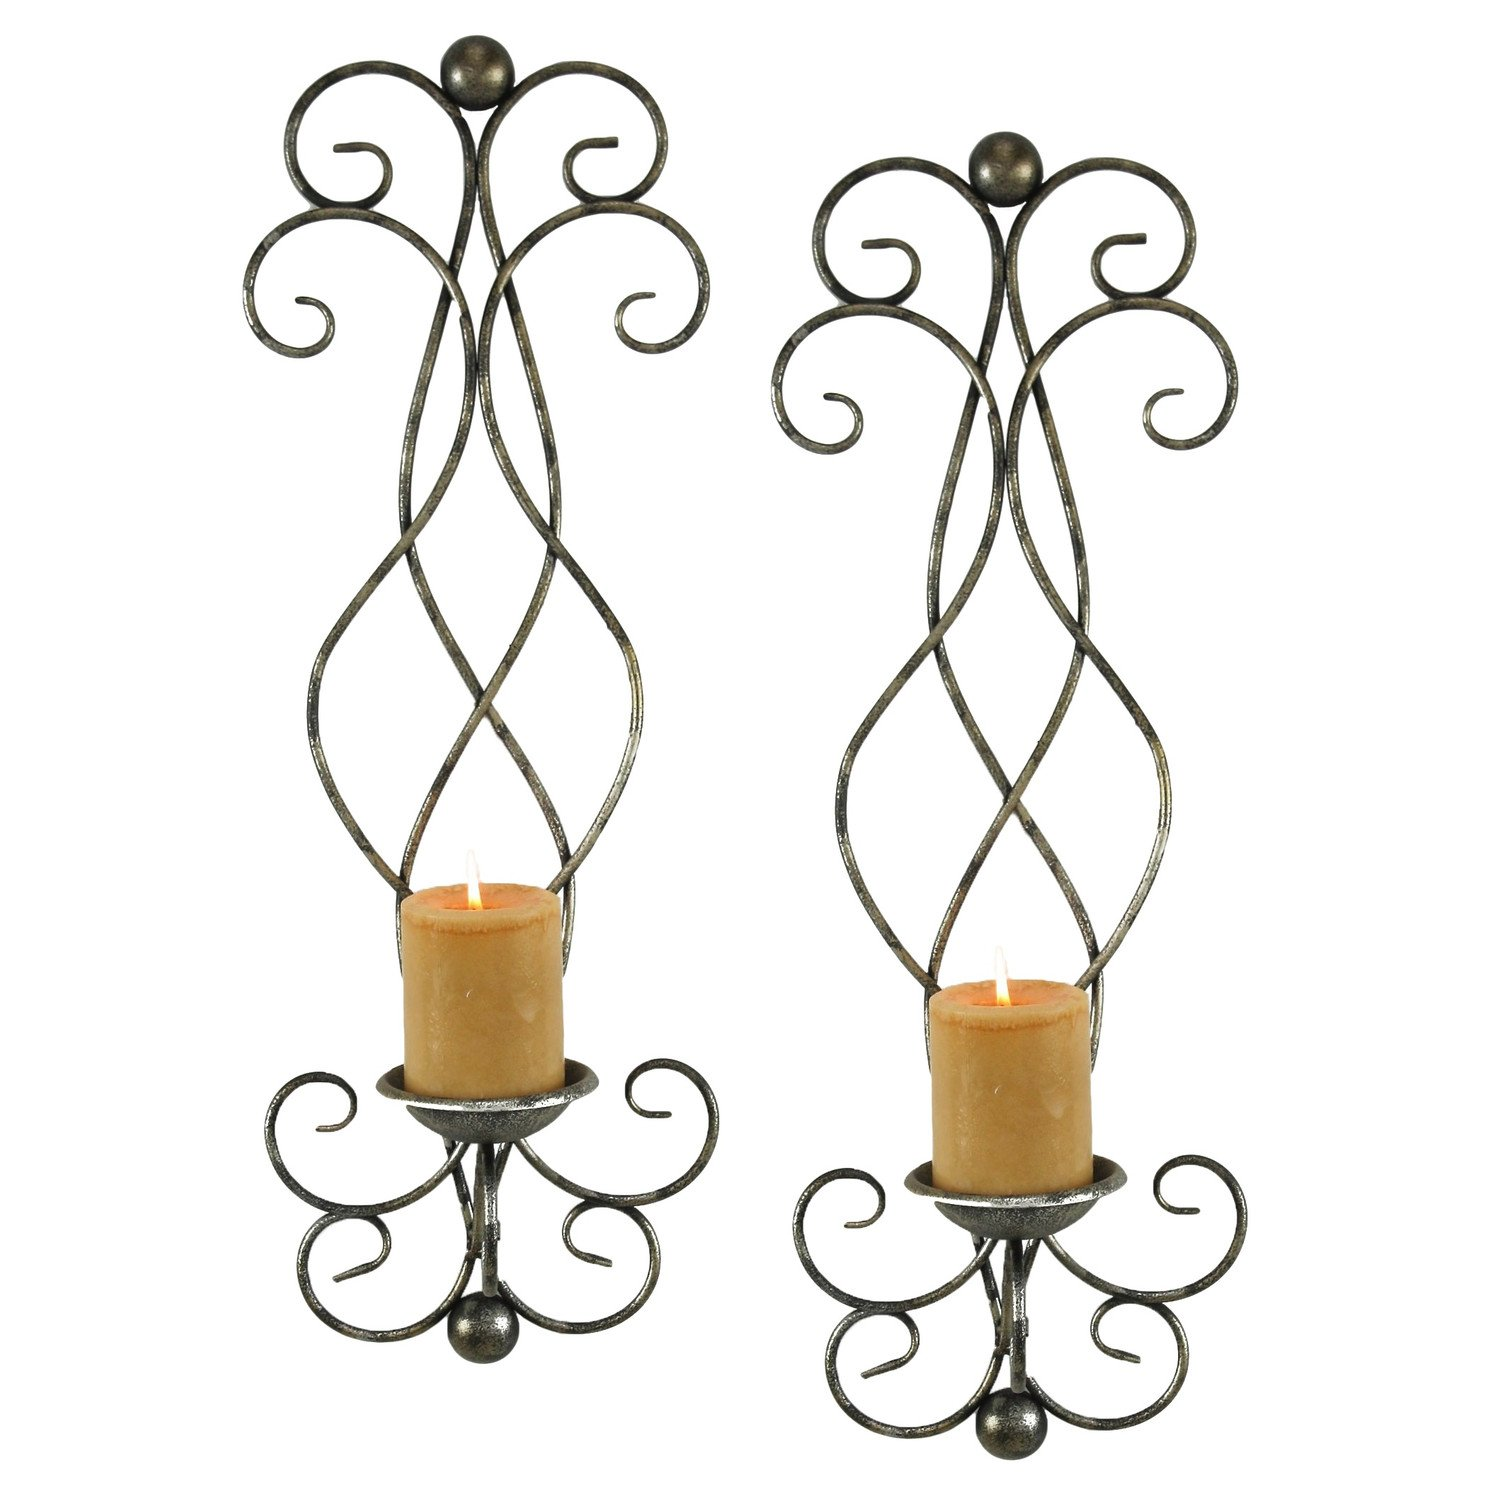 Metal Scroll Wall Candle Sconce Rustic Antique Vintage Unique Decor, Set of 2